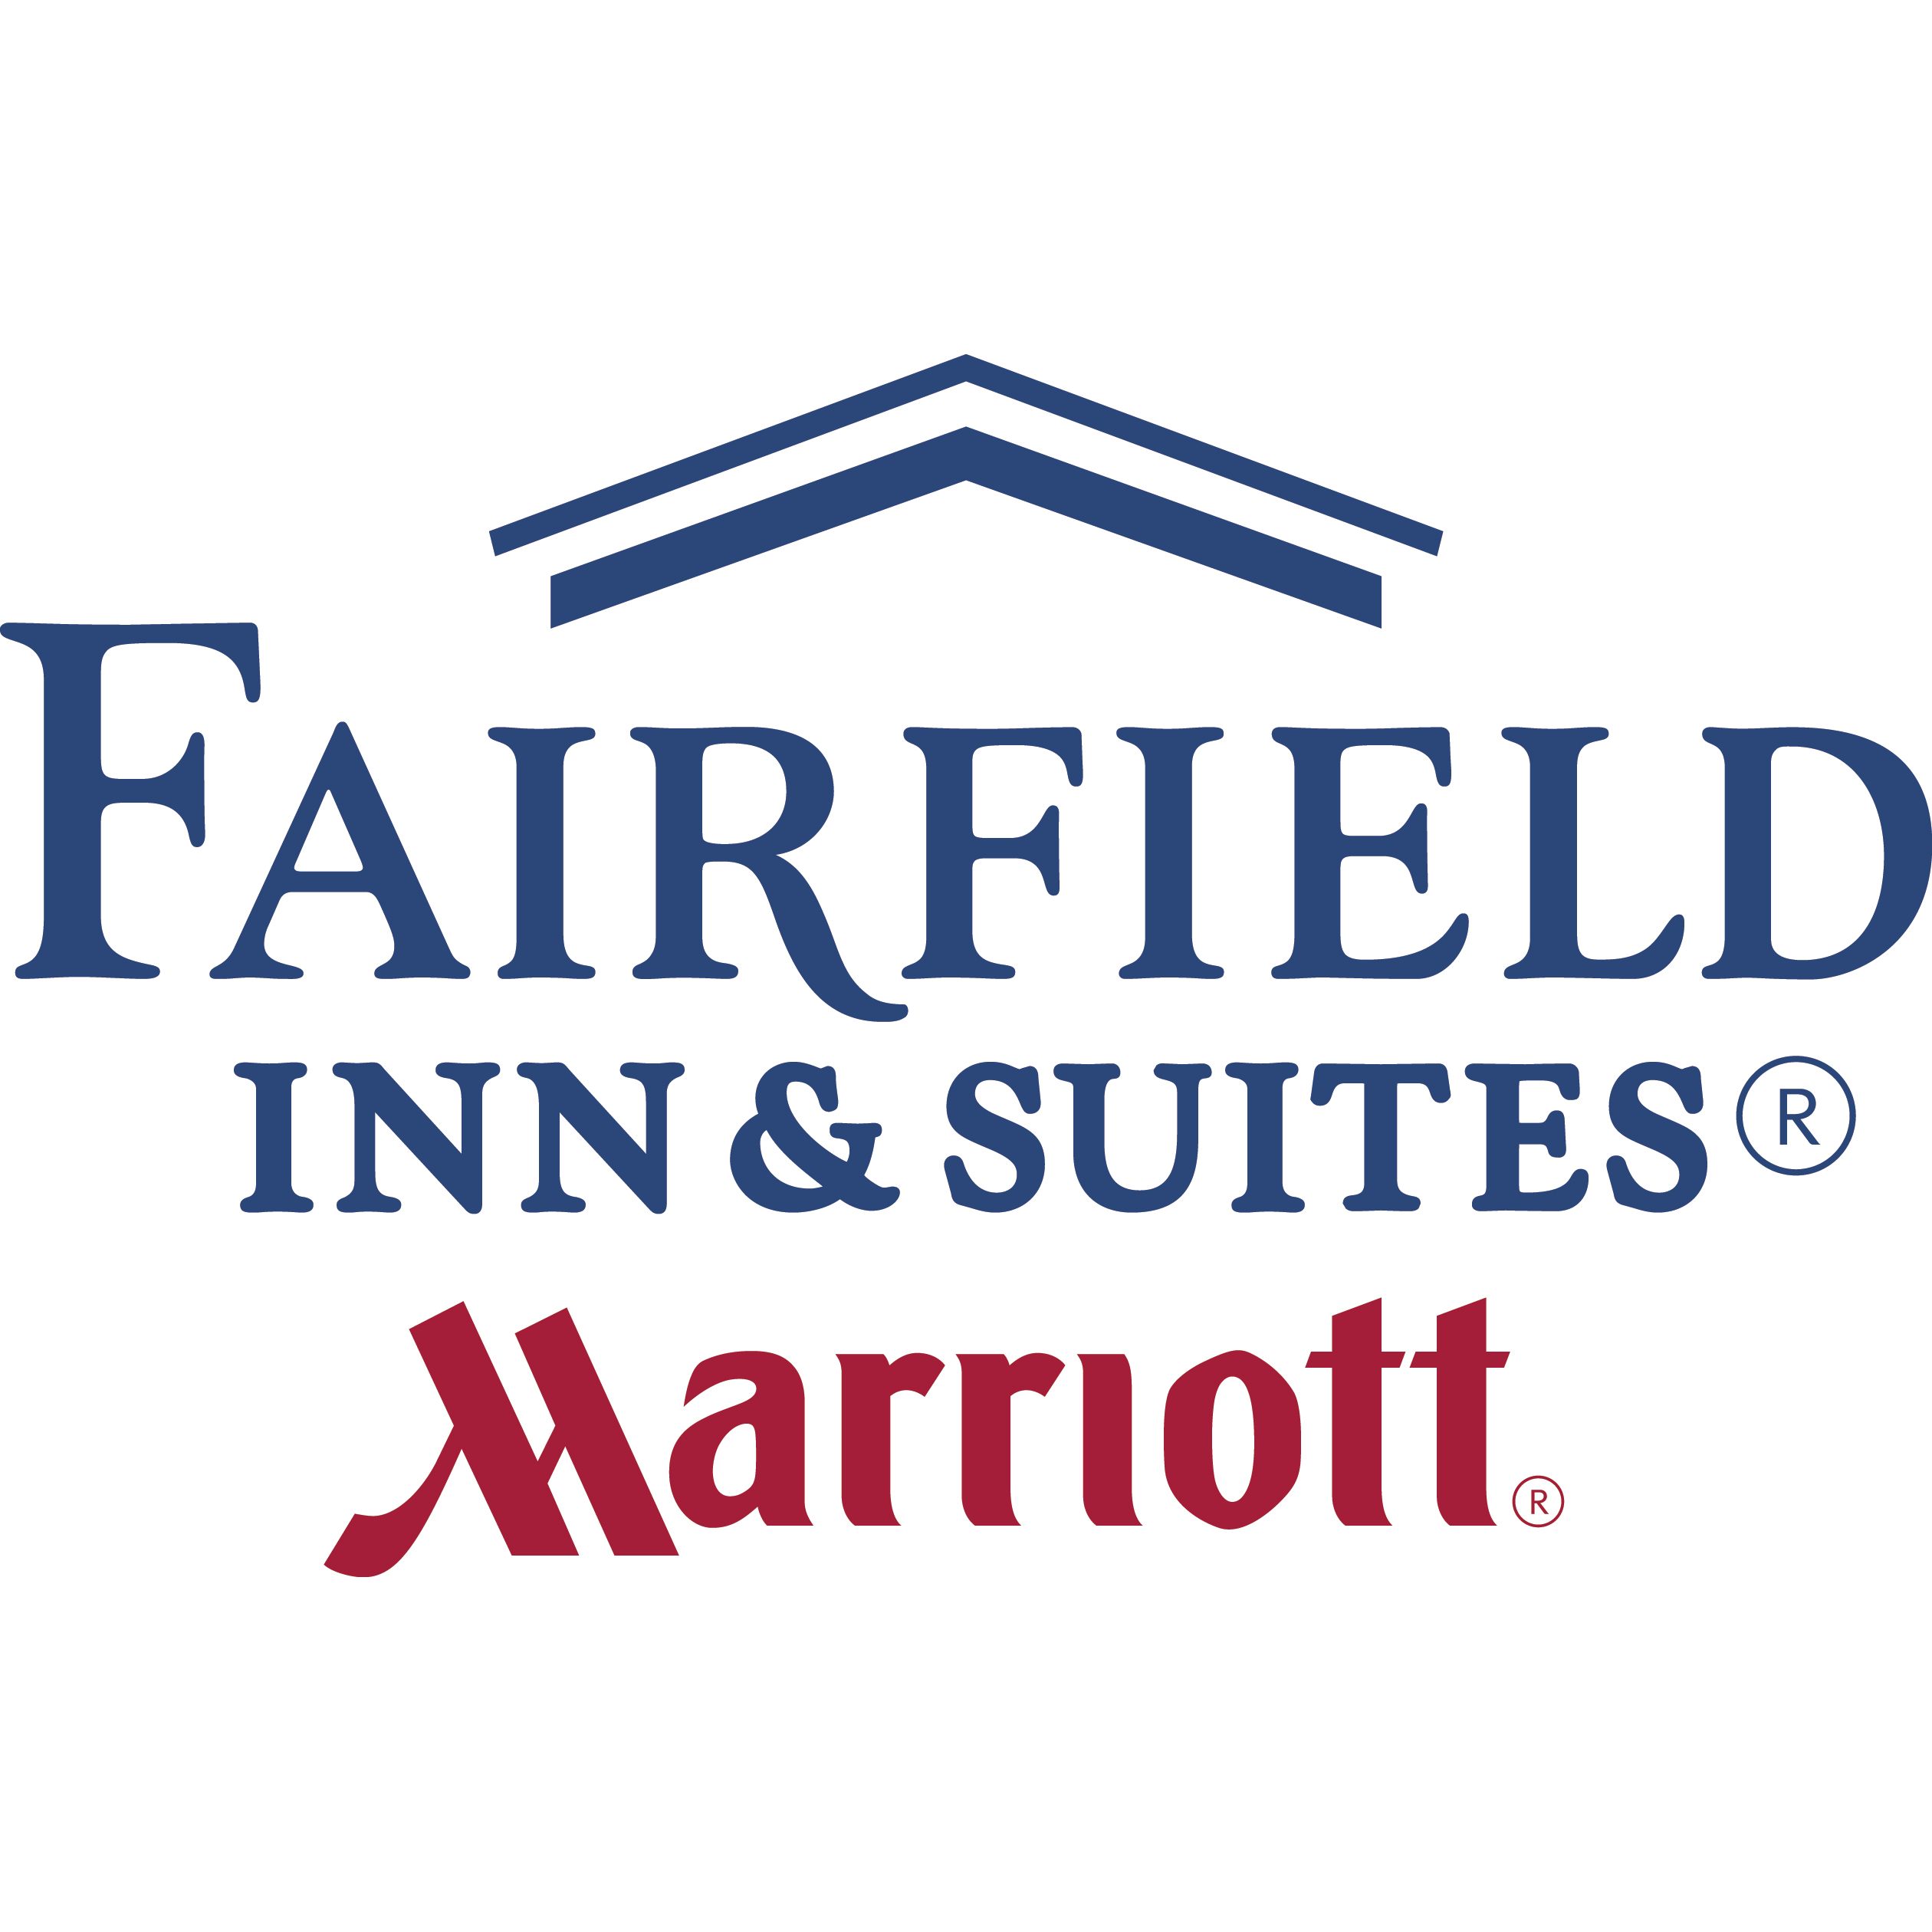 Fairfield Inn & Suites Montreal Airport logo